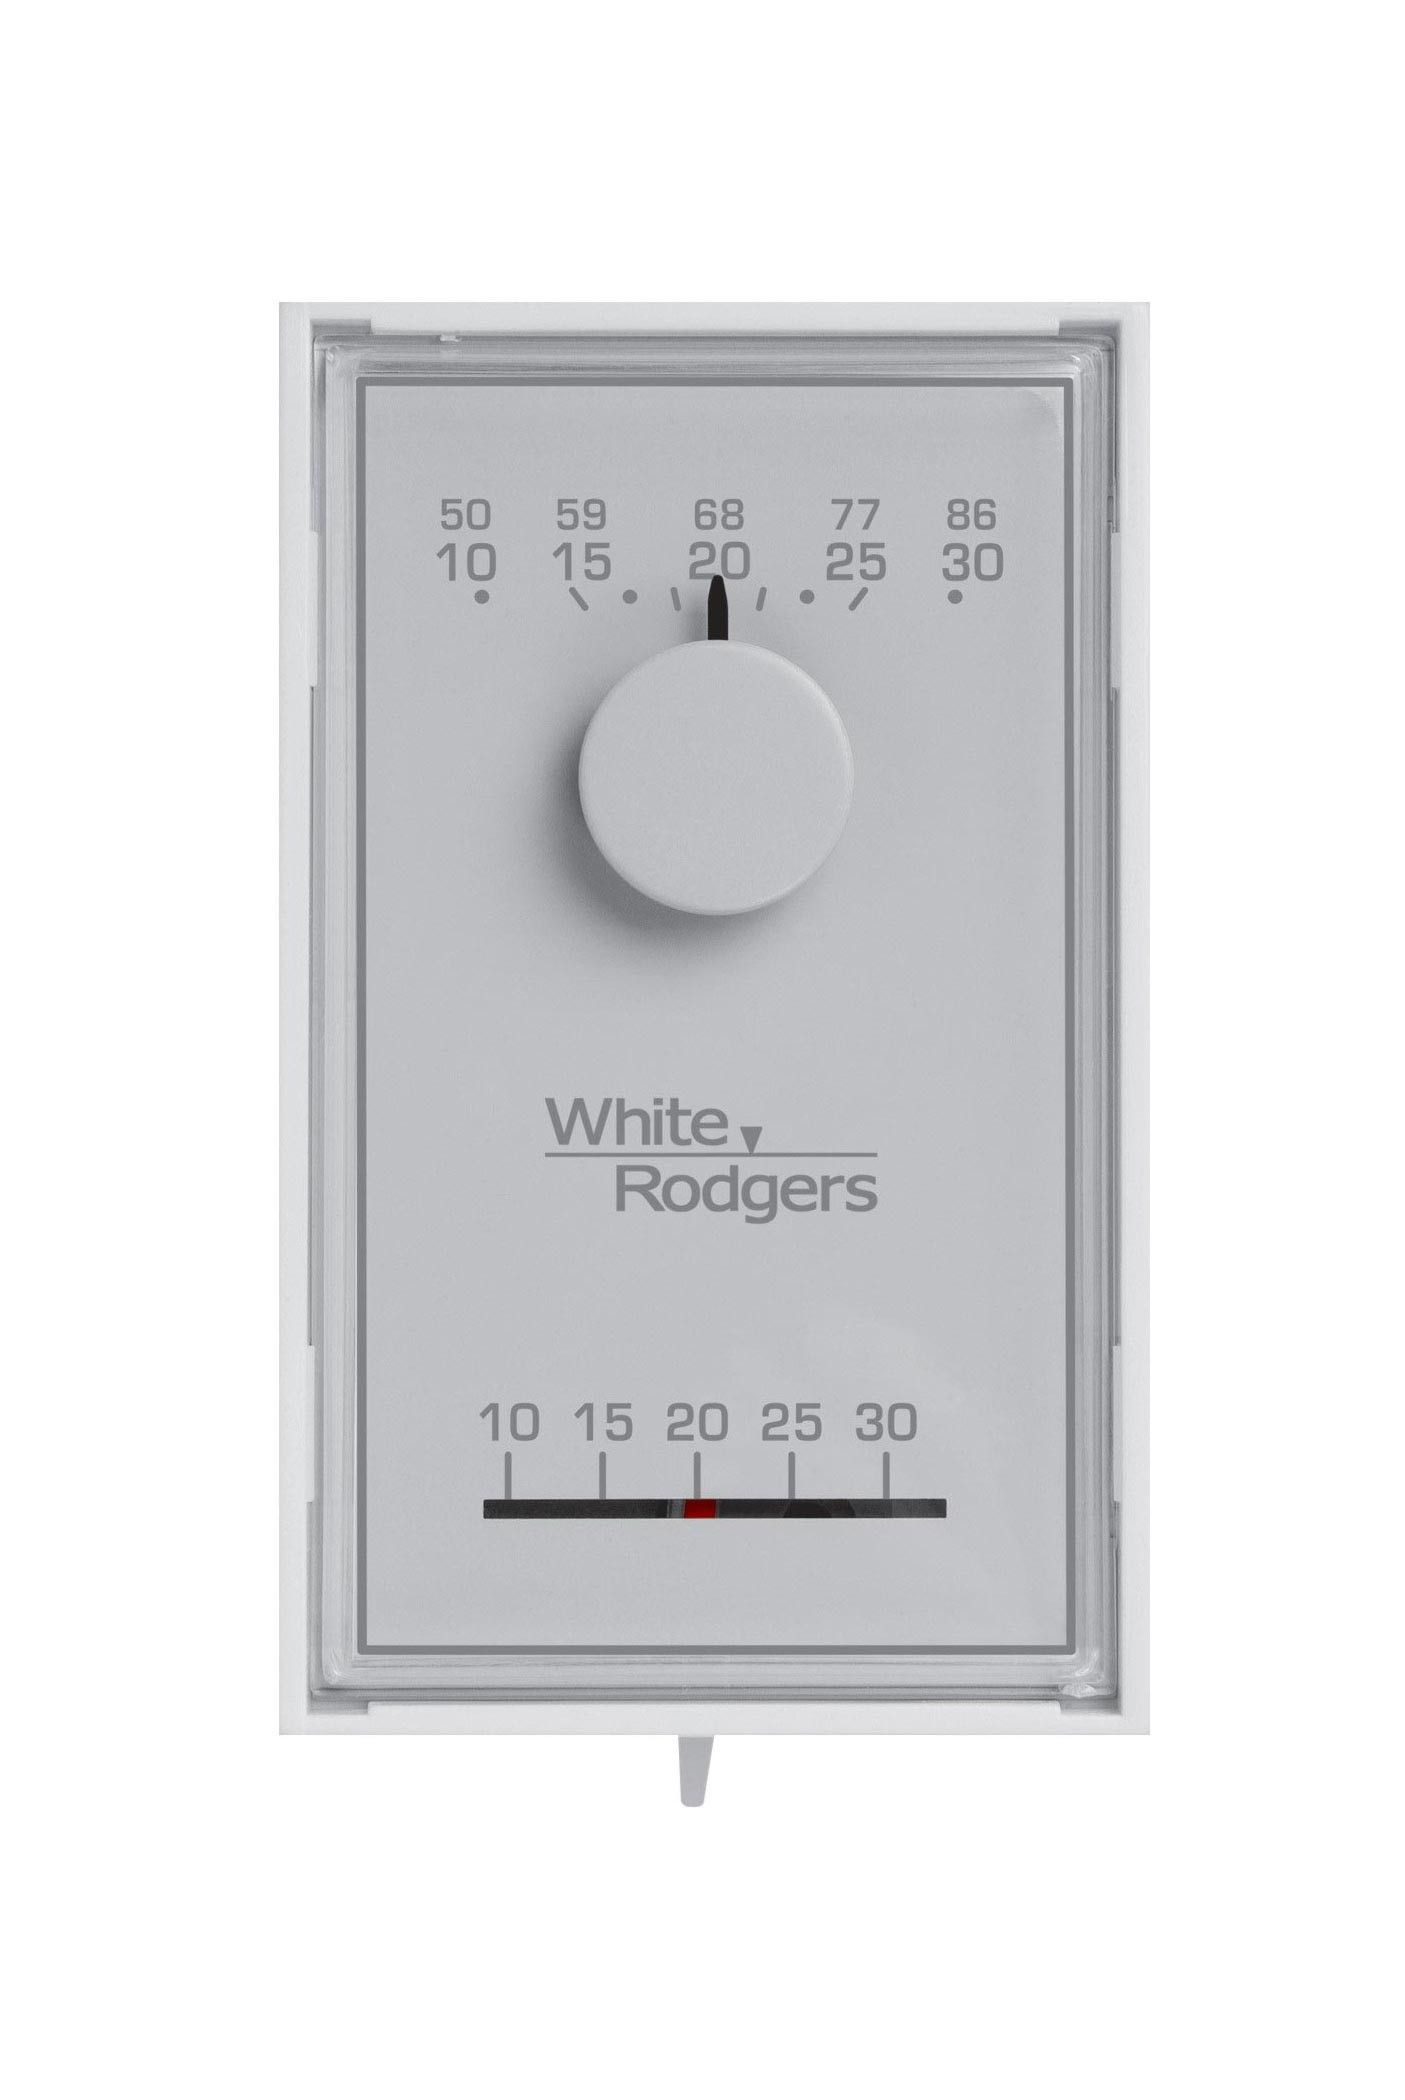 Thermostat White Rodgers Emerson 1e30n 311 Thermostat Cooking Timer Packing